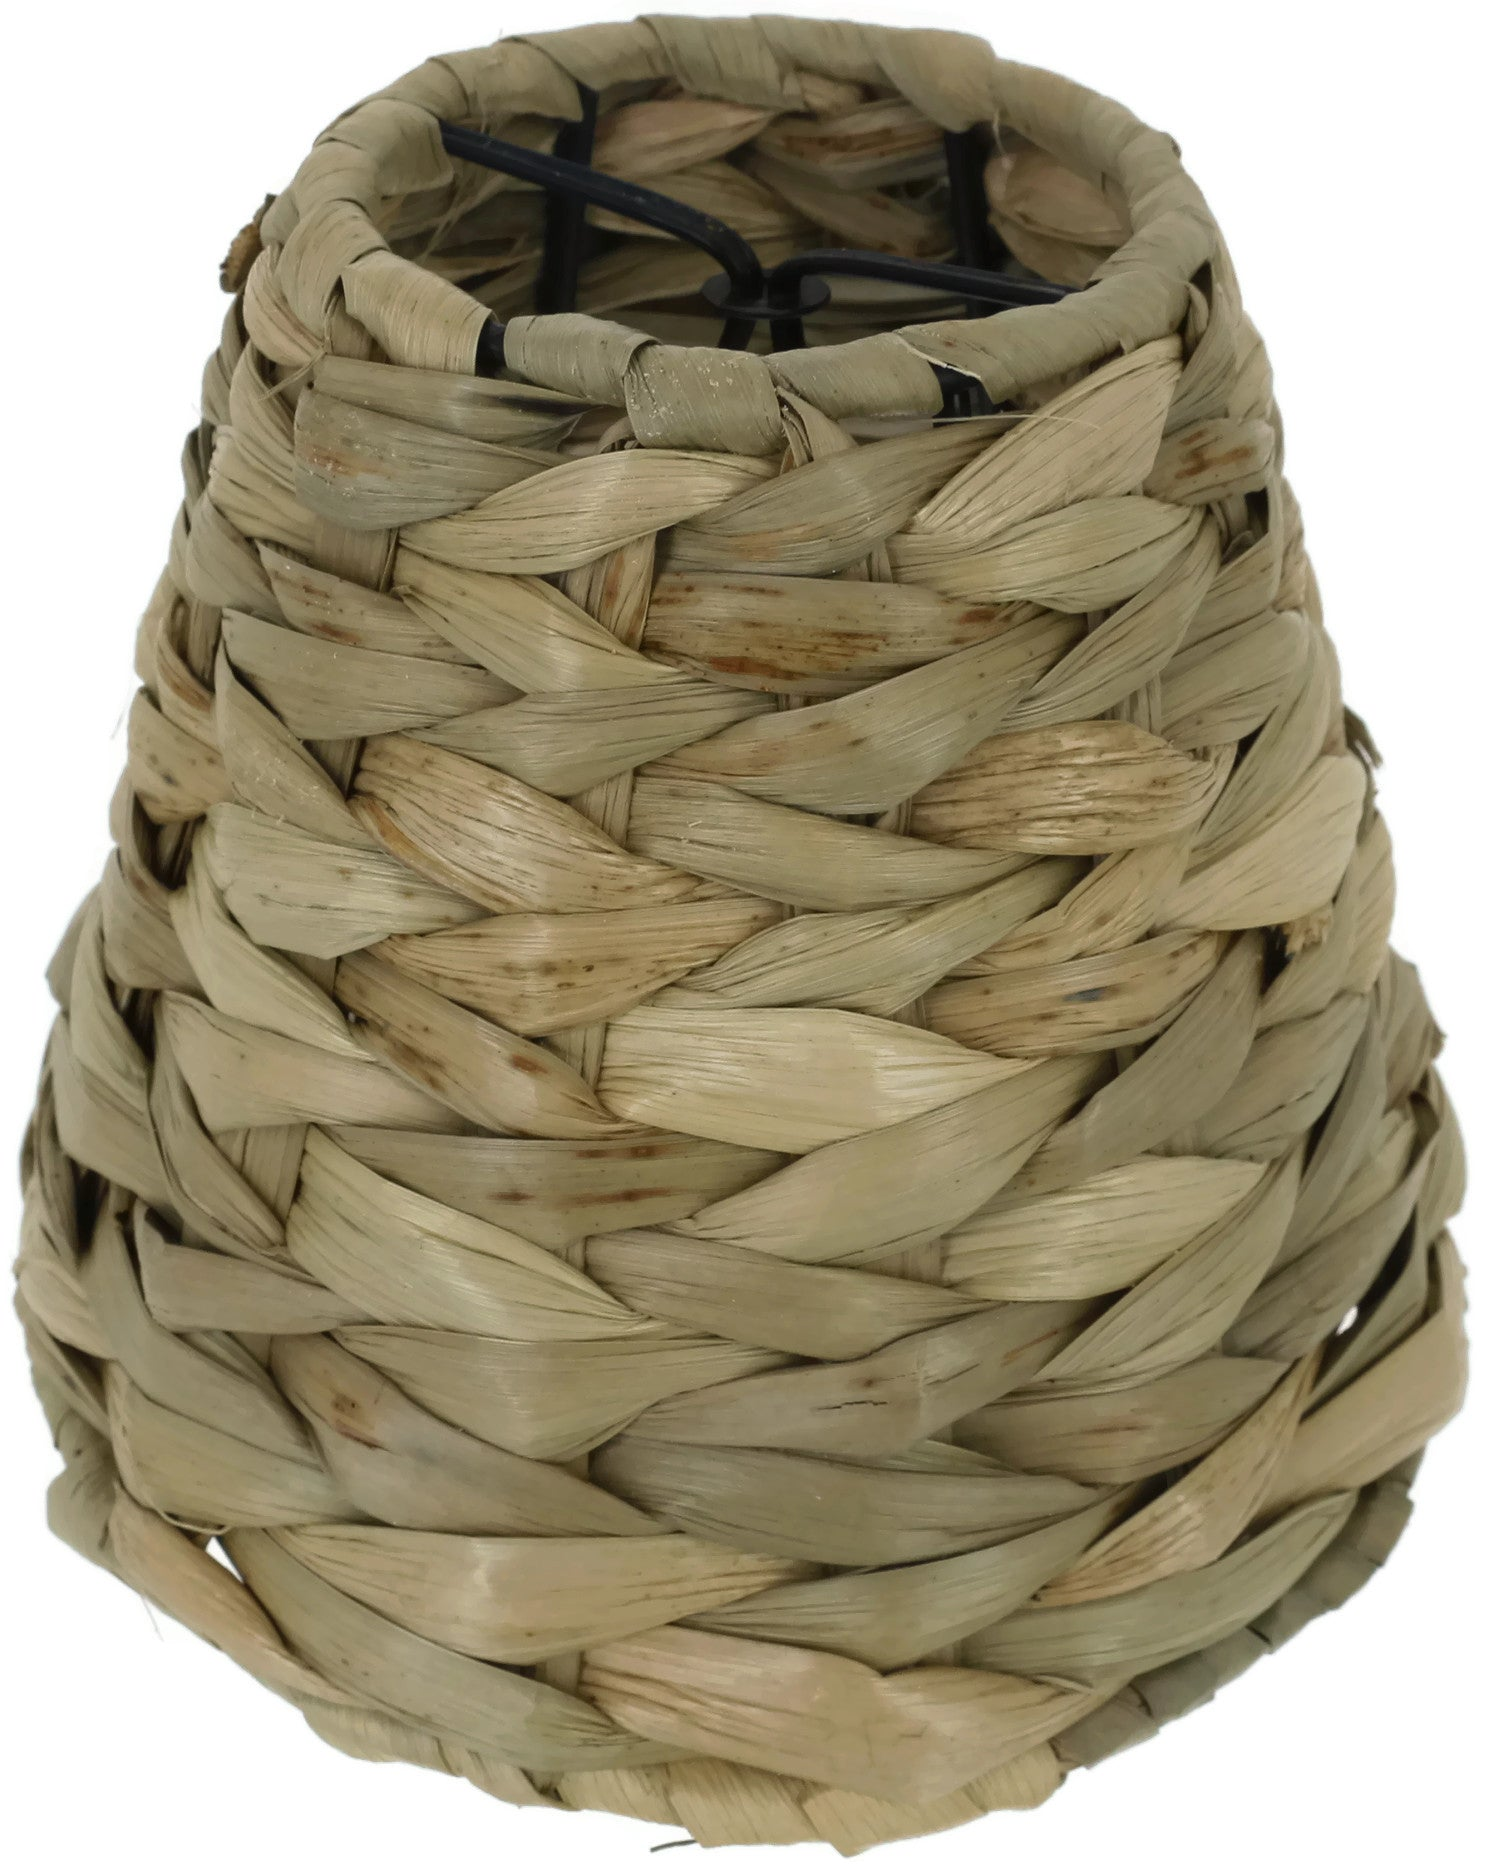 Natural Woven Seagrass Chandelier Lamp Shades, Clip-on, 3-inch by 6-inch by 5-inch